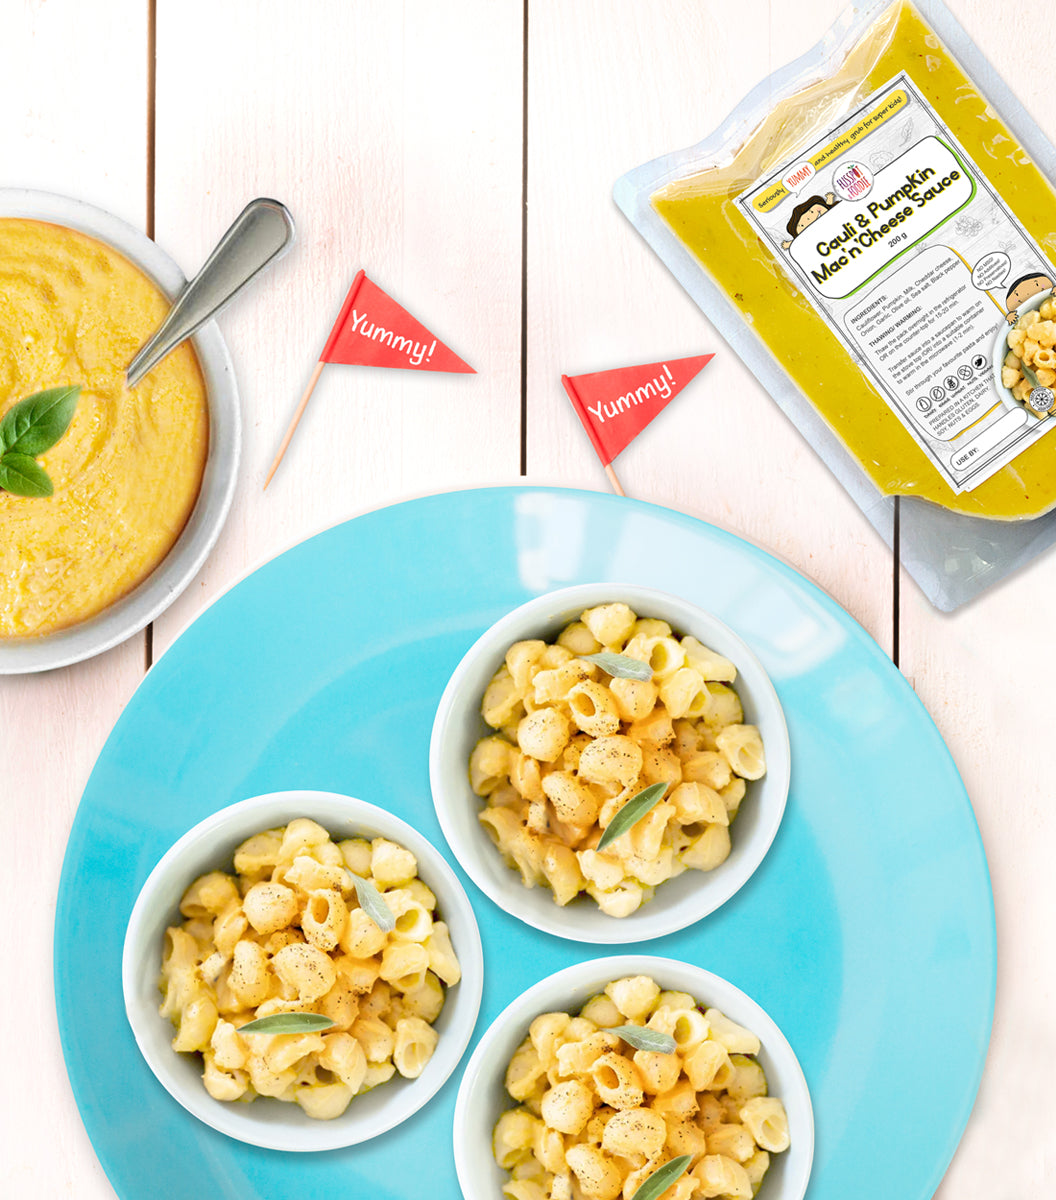 Cauli & Pumpkin Mac 'n' Cheese Sauce